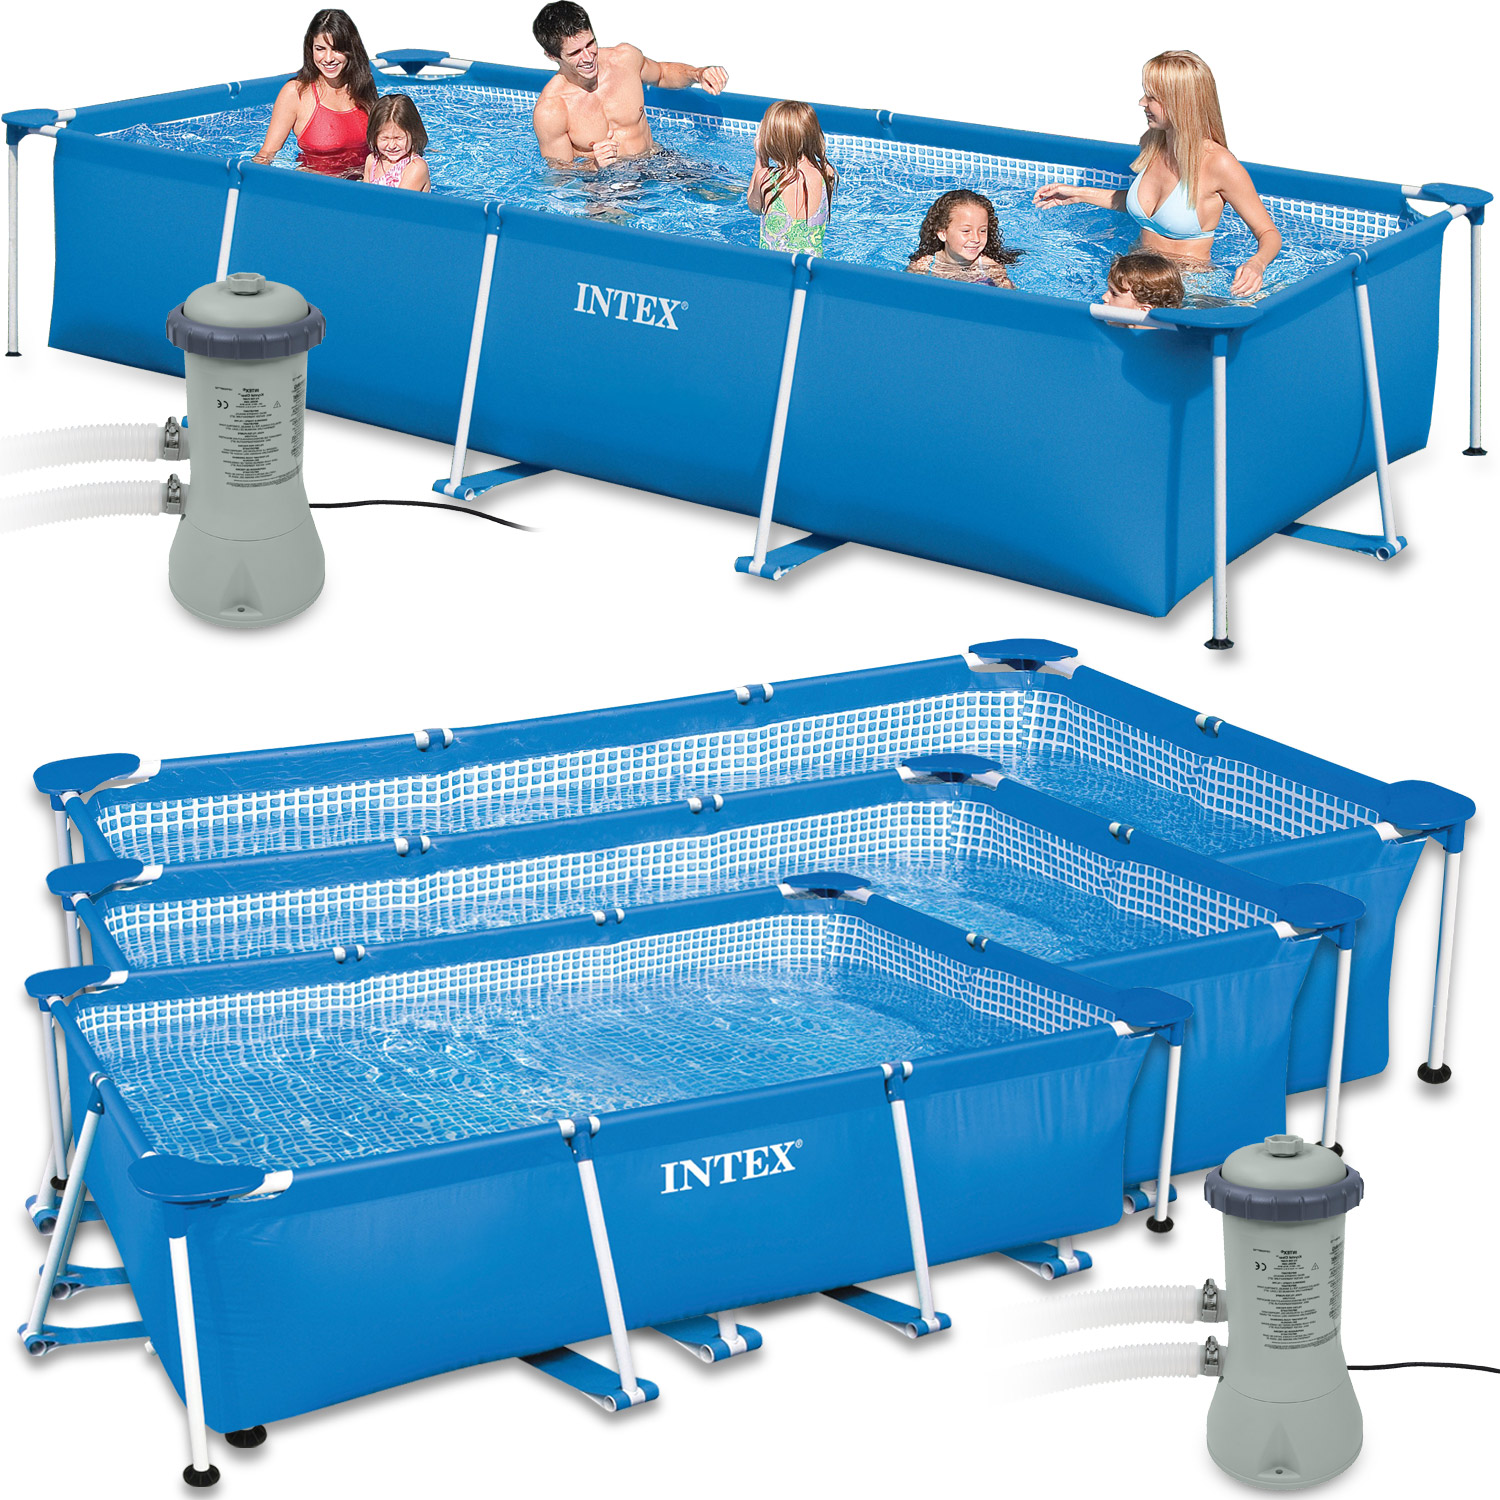 intex set family schwimmbad swimming pool schwimmbecken rechteck frame mit pumpe ebay. Black Bedroom Furniture Sets. Home Design Ideas